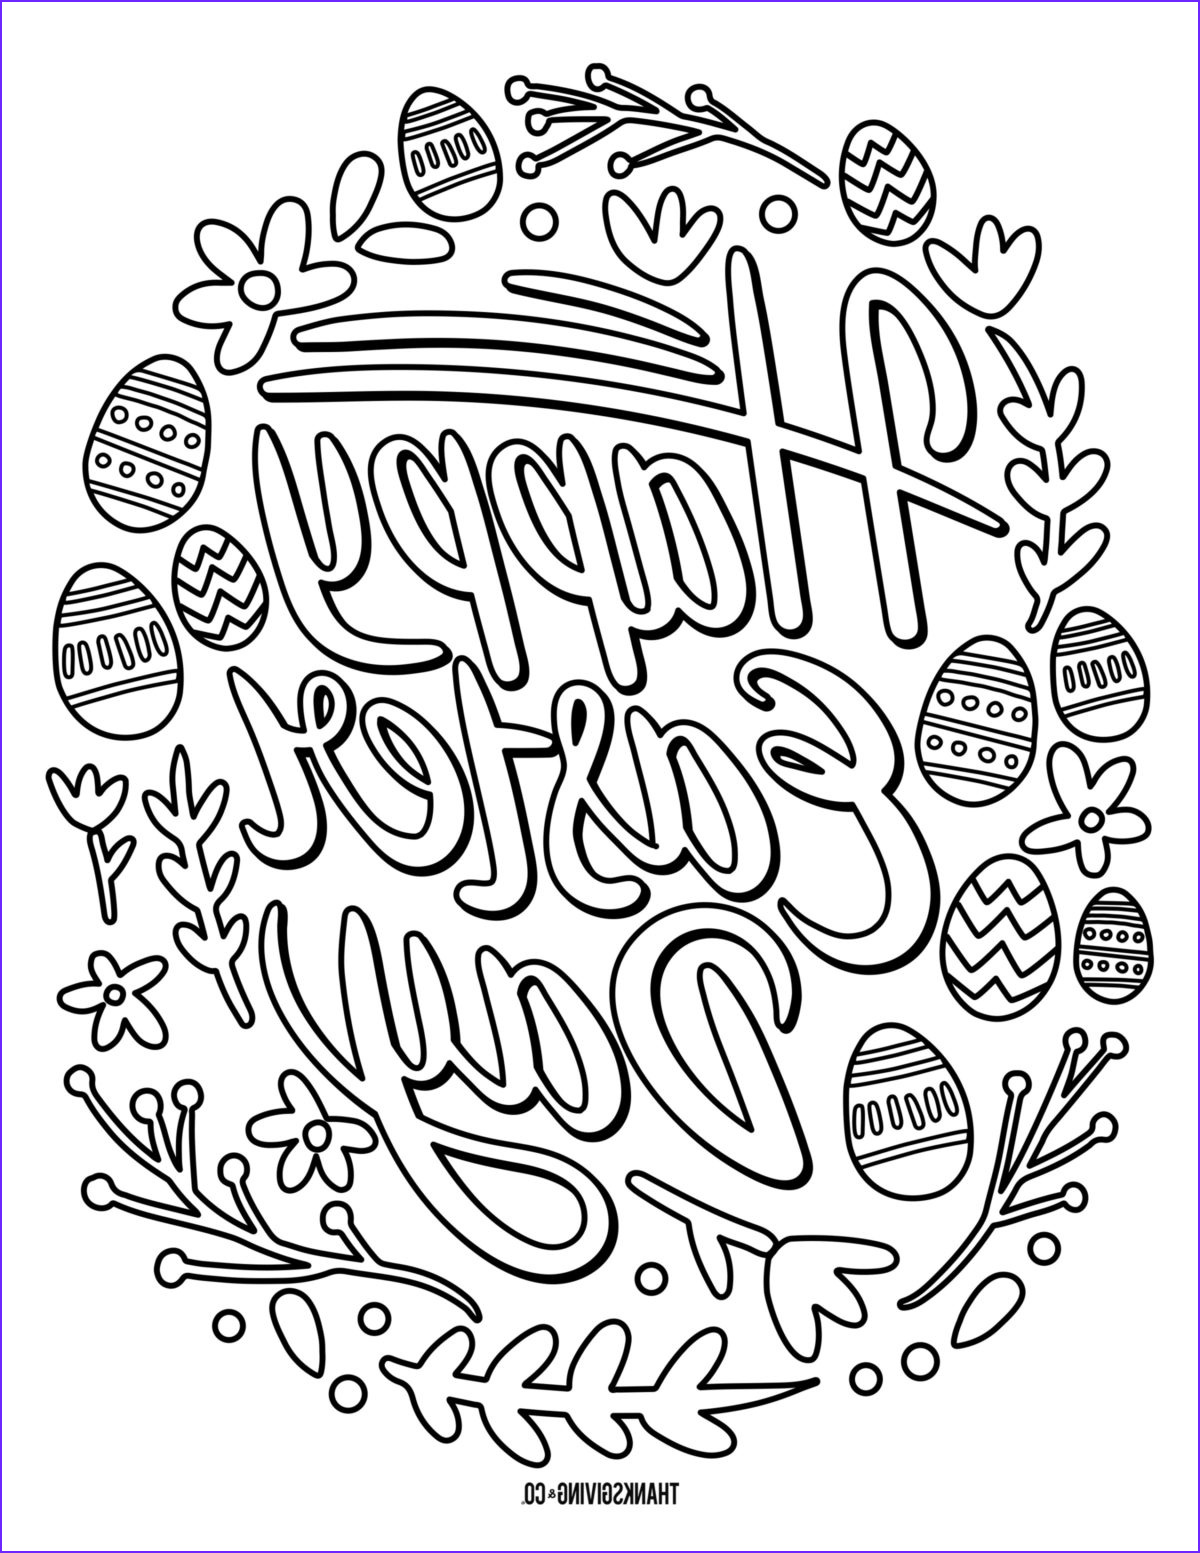 Coloring Pages for Easter Best Of Collection Free Happy Easter Coloring Pages Printable for Adults